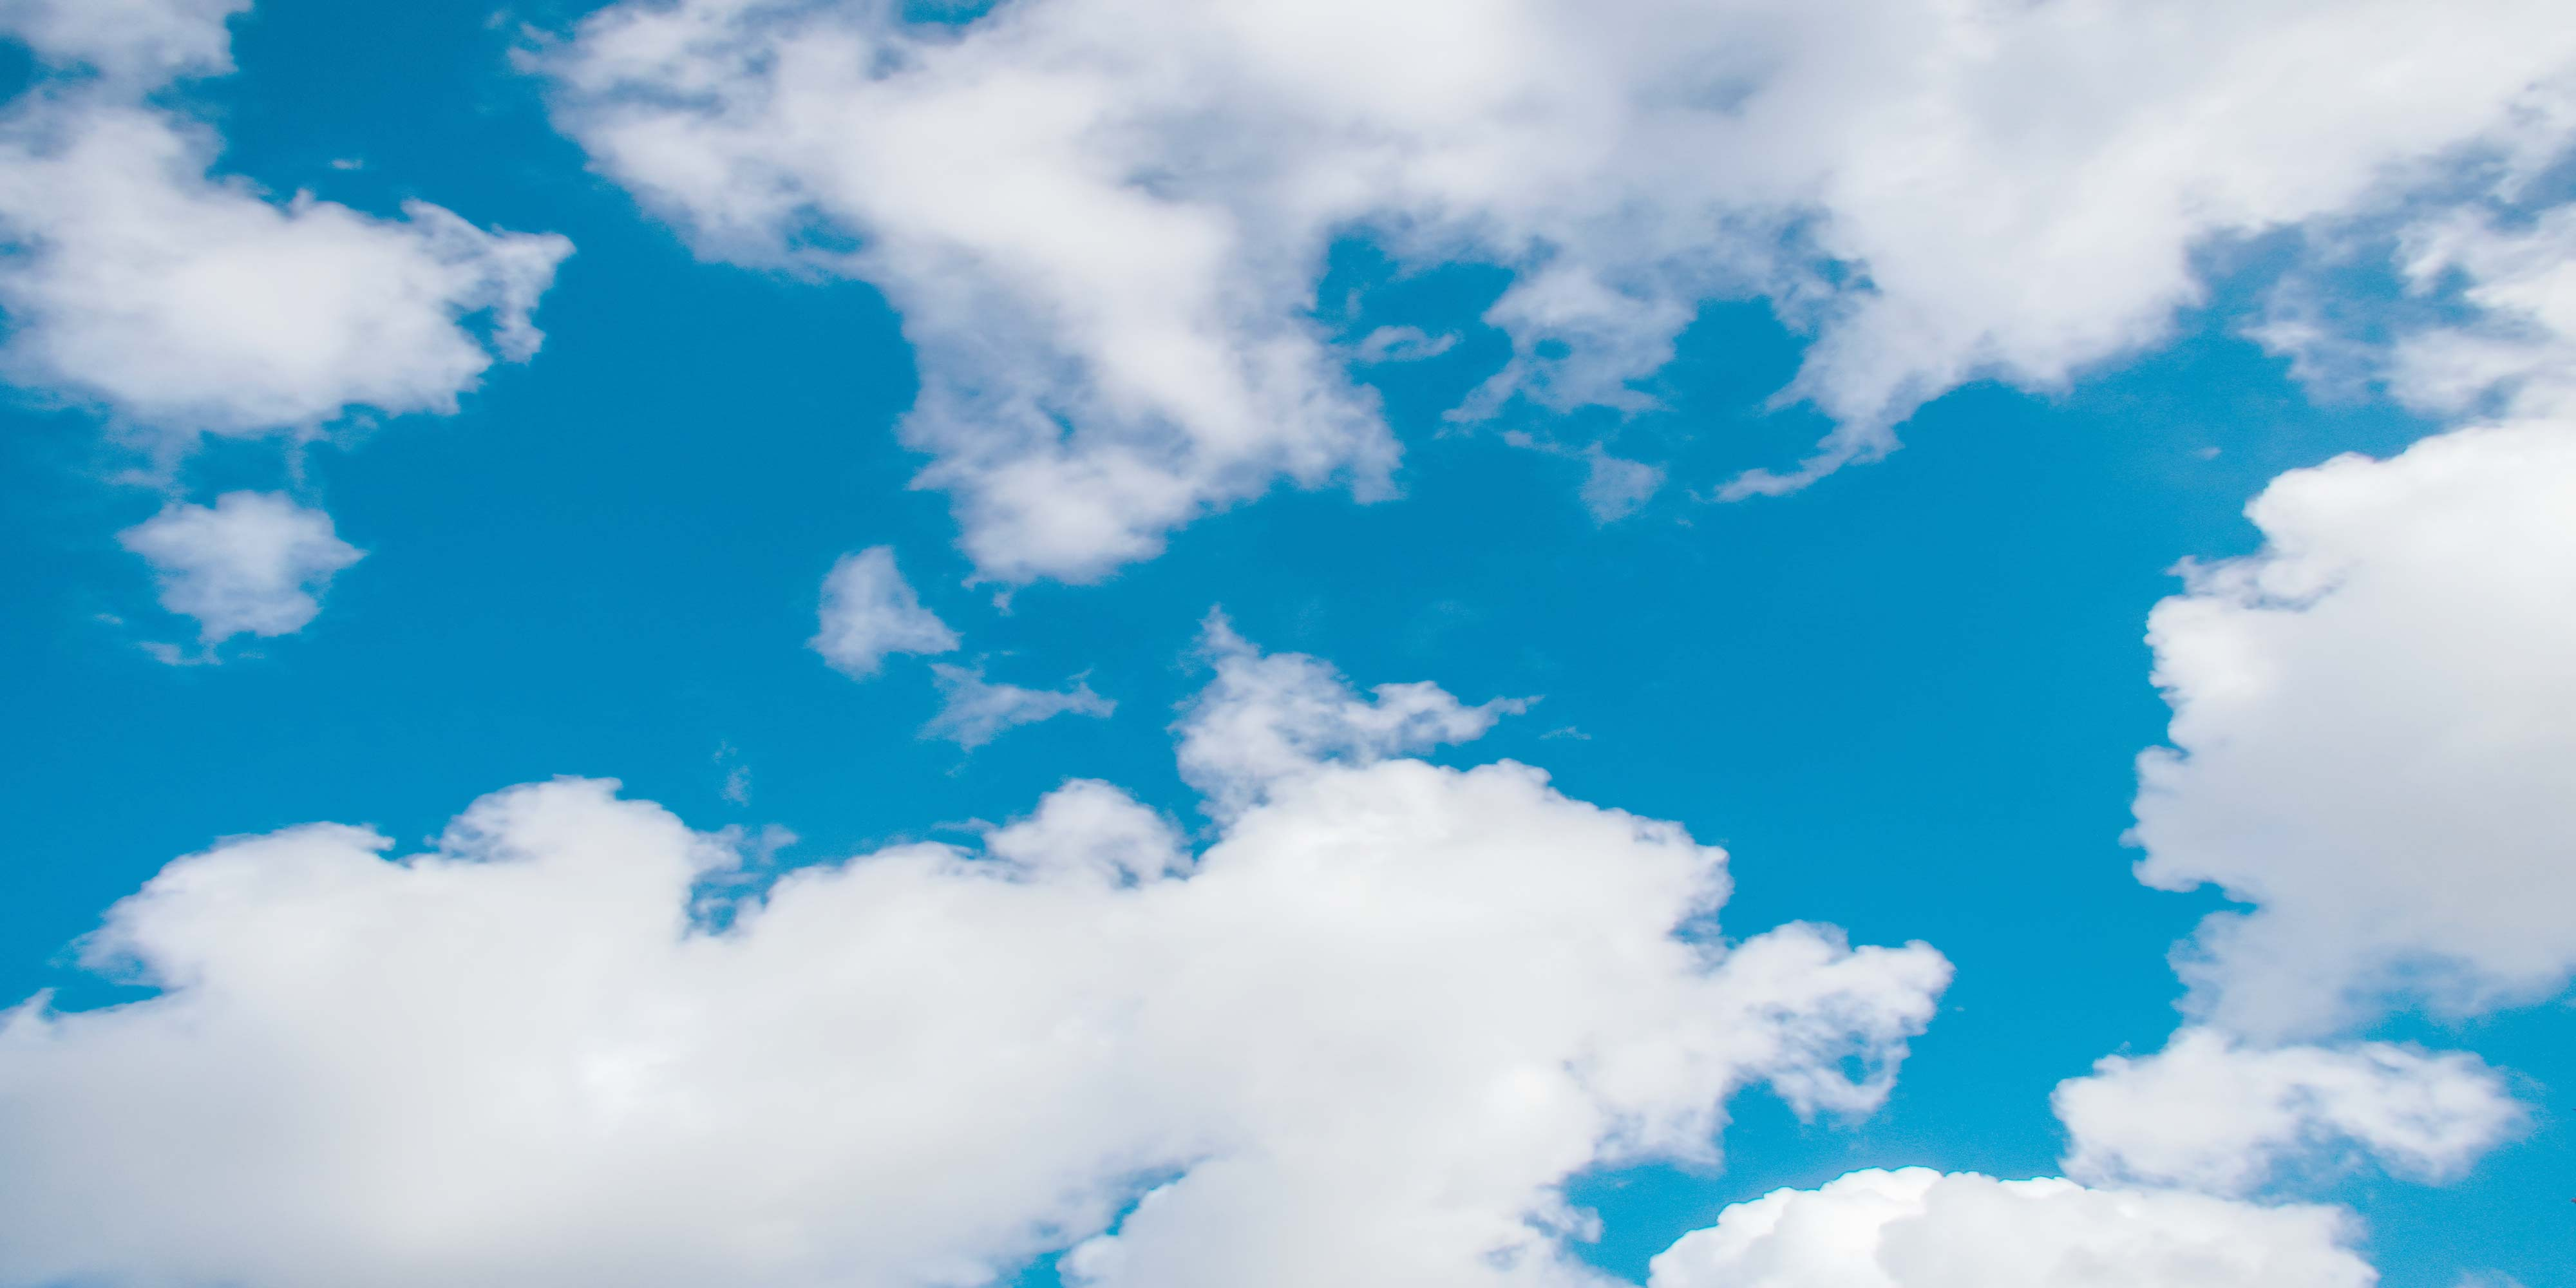 Cloud Wallpaper 4000x2000